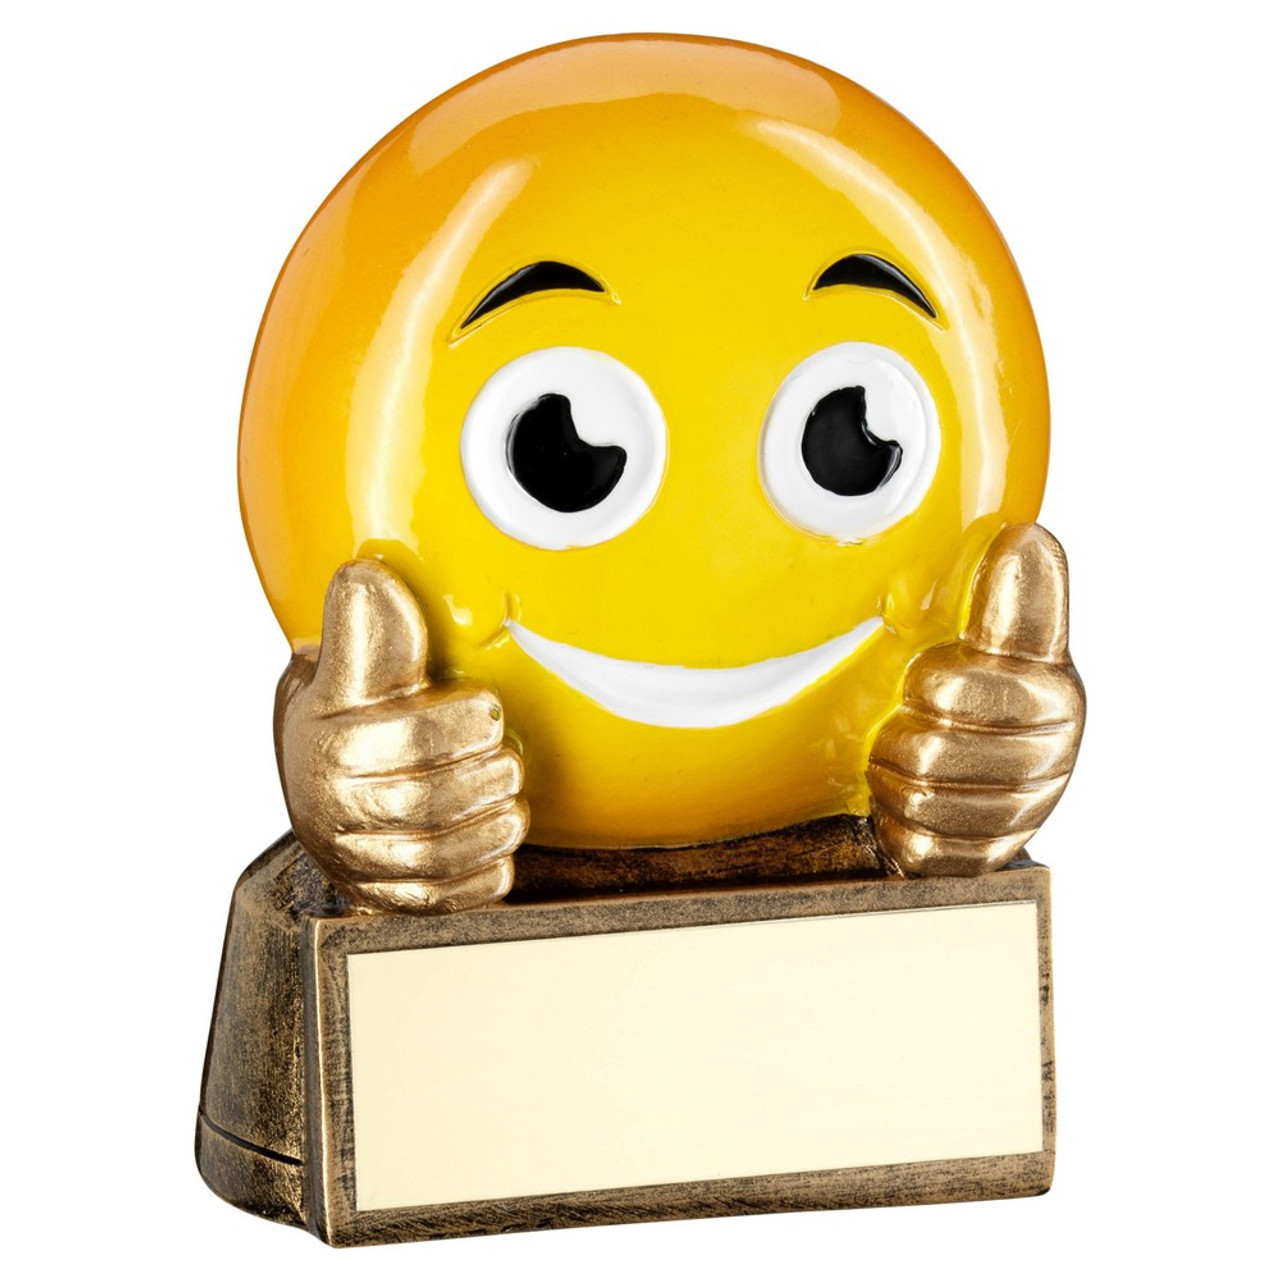 Smiley Face Emoji Novelty Thumbsup Award Budget Trophy Rf951